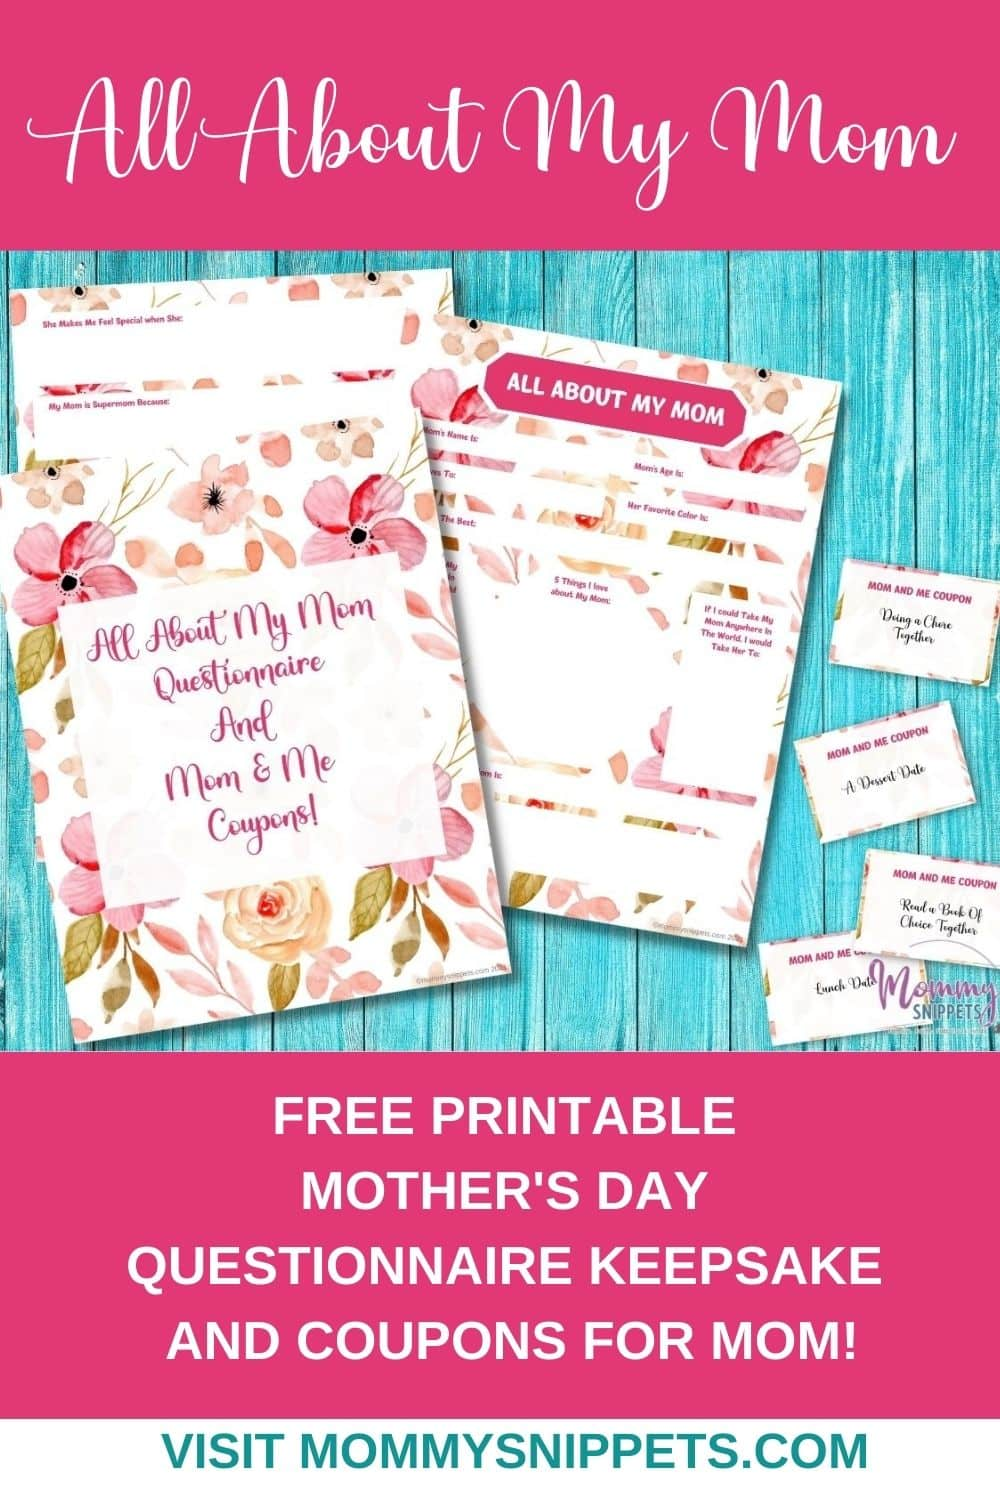 A Sweet Keepsake for Mom- All About My Mom Printable and Coupons-MommySnippets.com